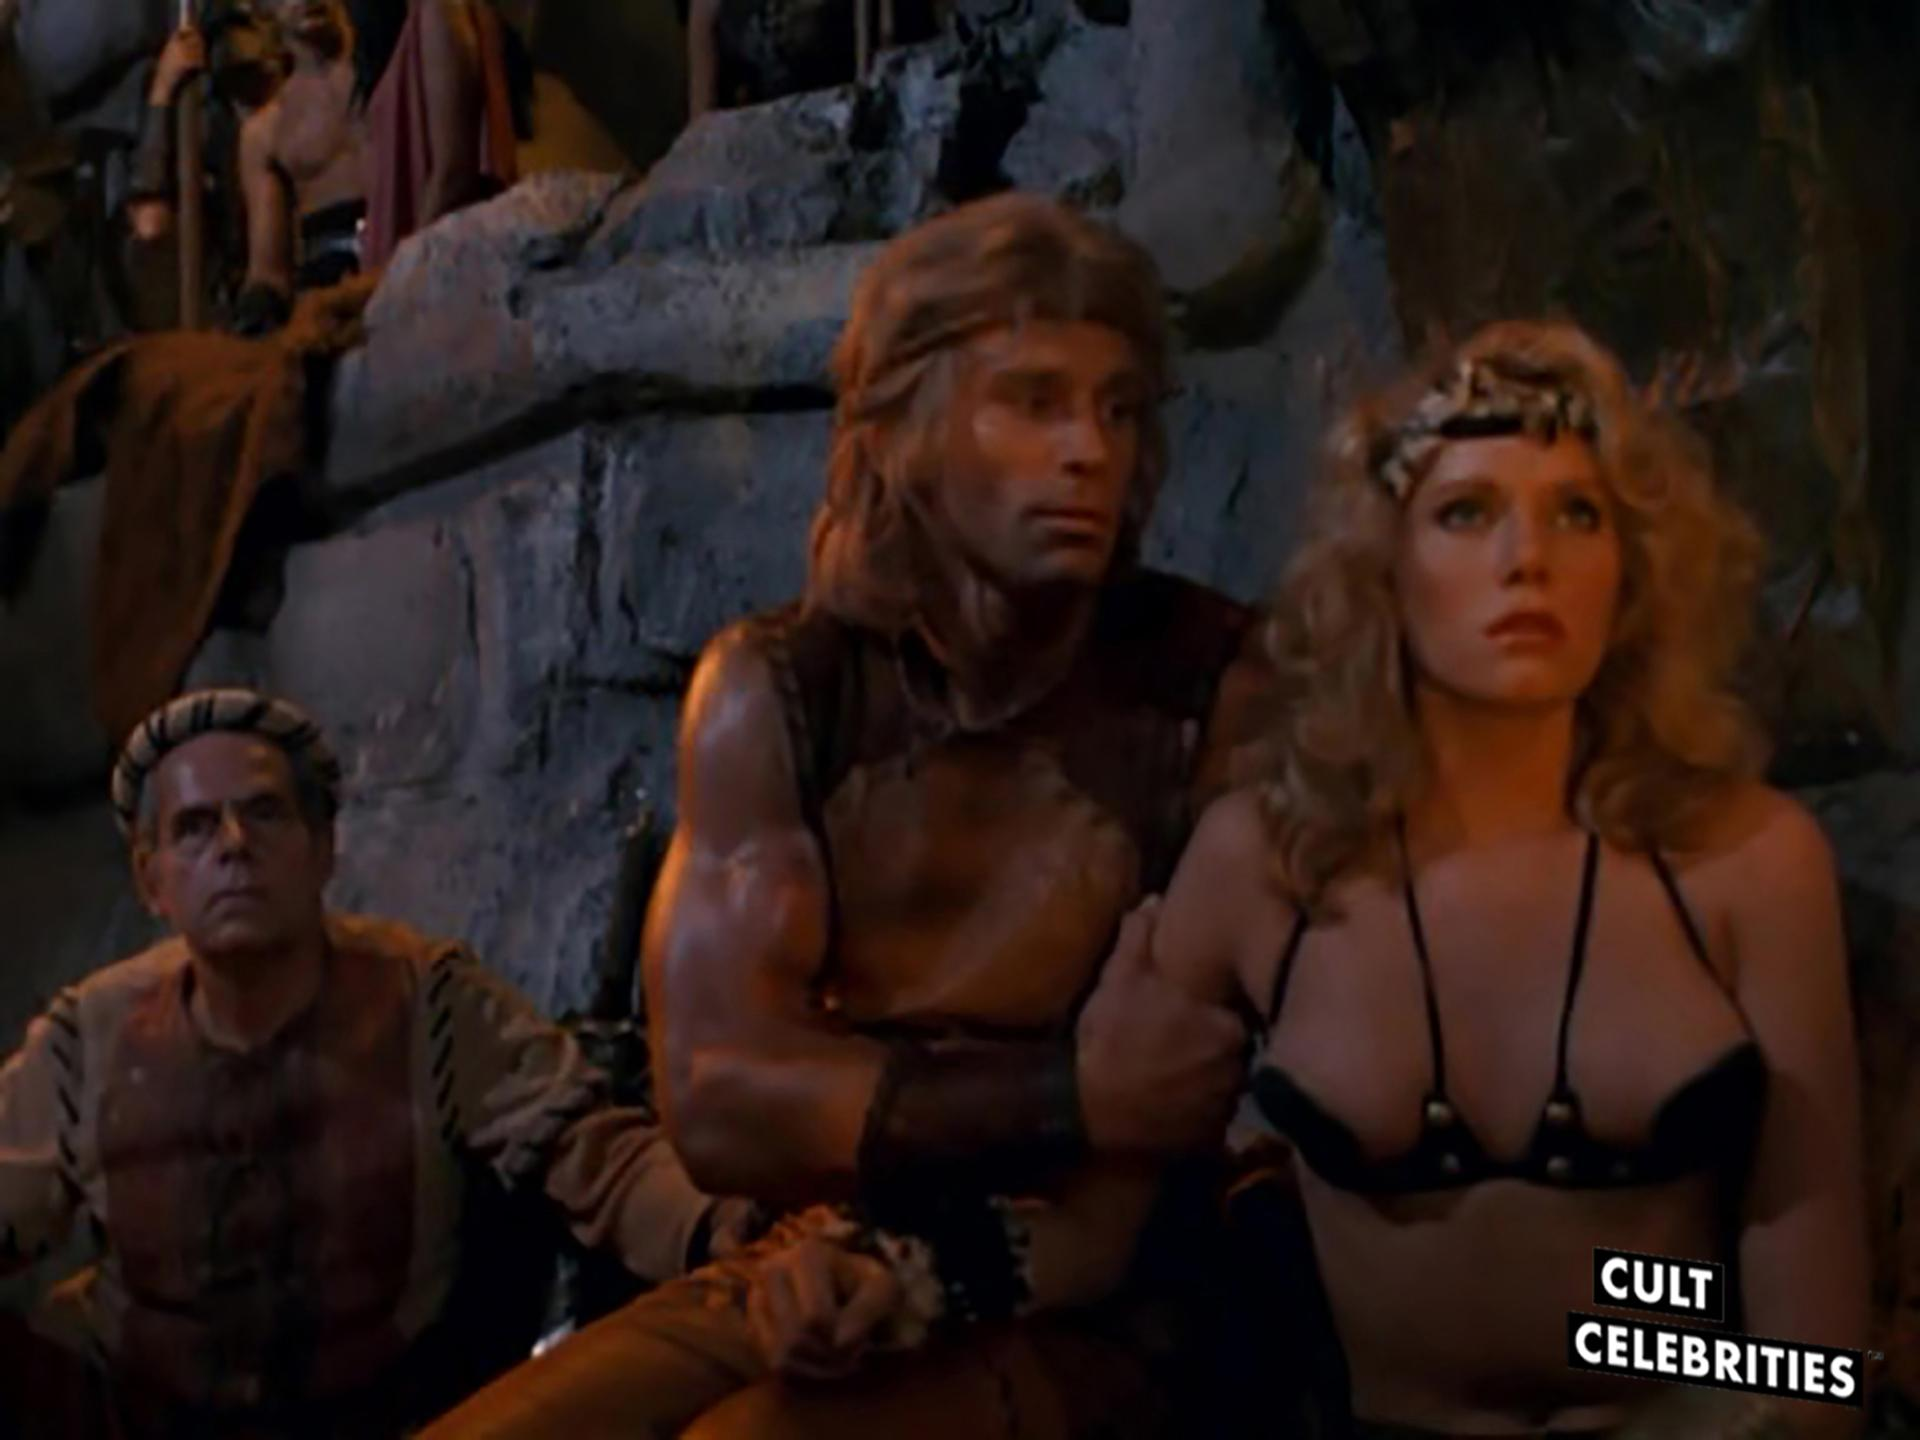 Lana Clarkson and Rick Hill in Deathstalker (1983)